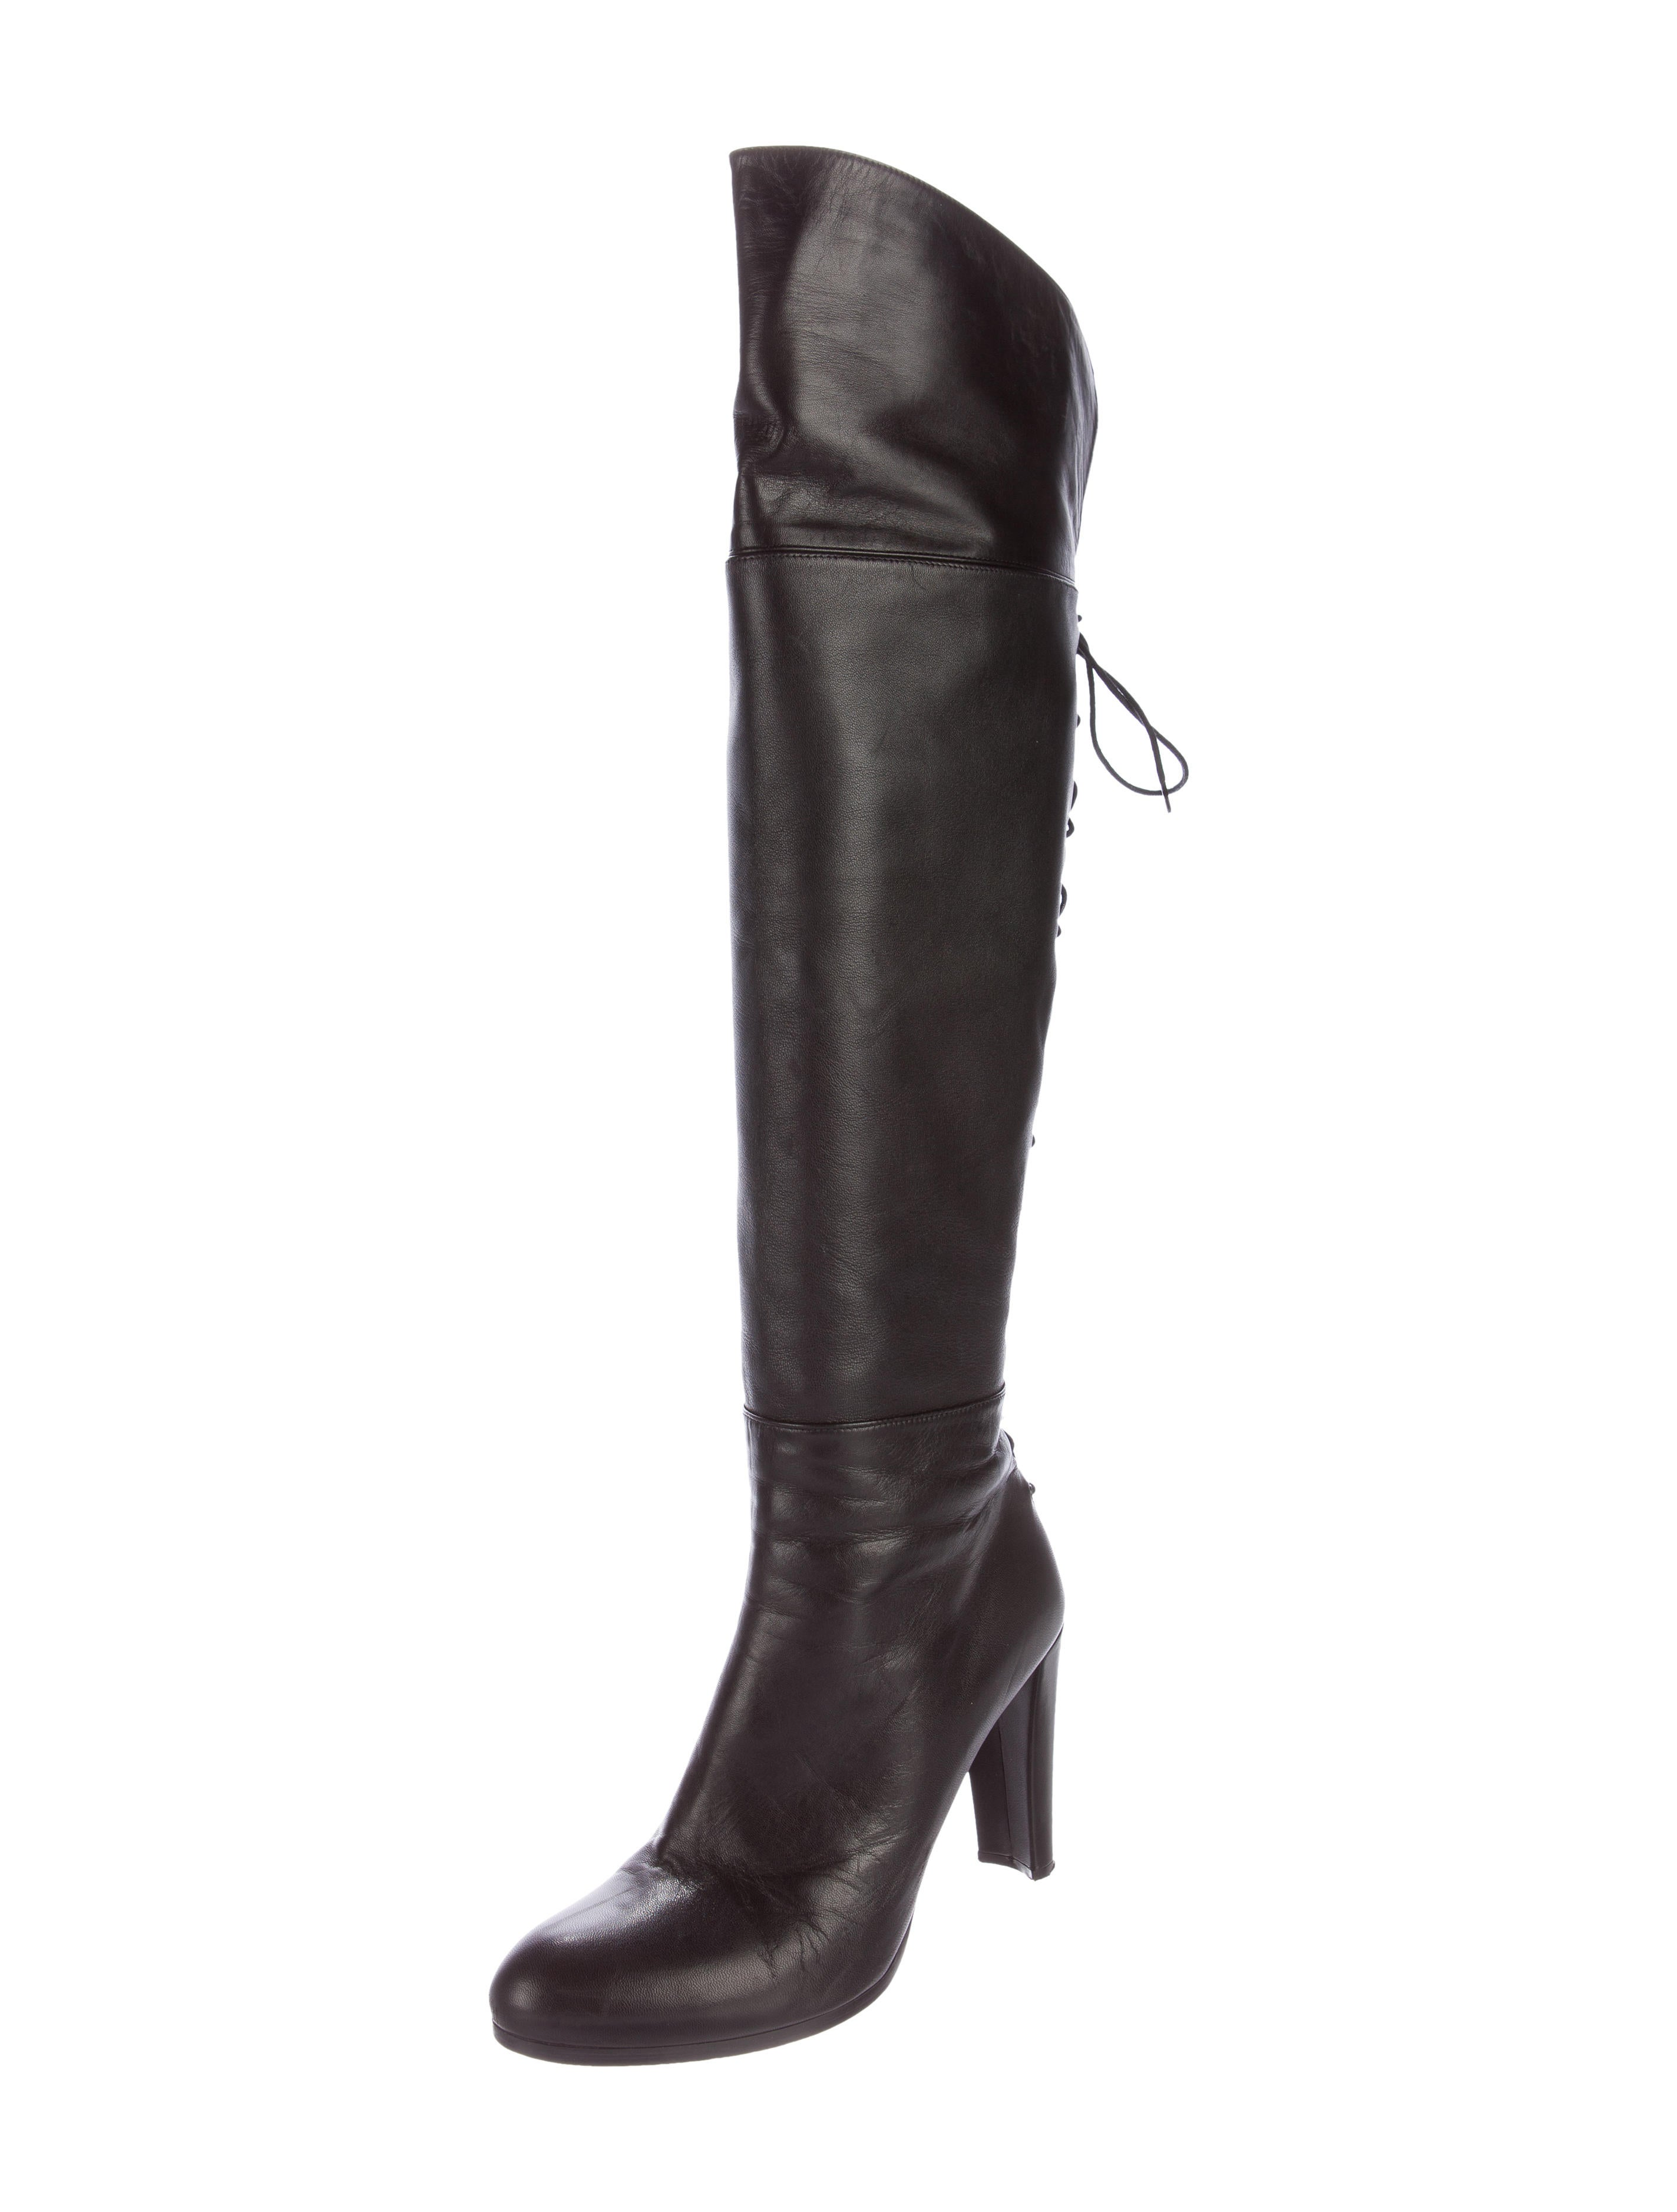 Stuart Weitzman Lace-Up Over-The-Knee Boots